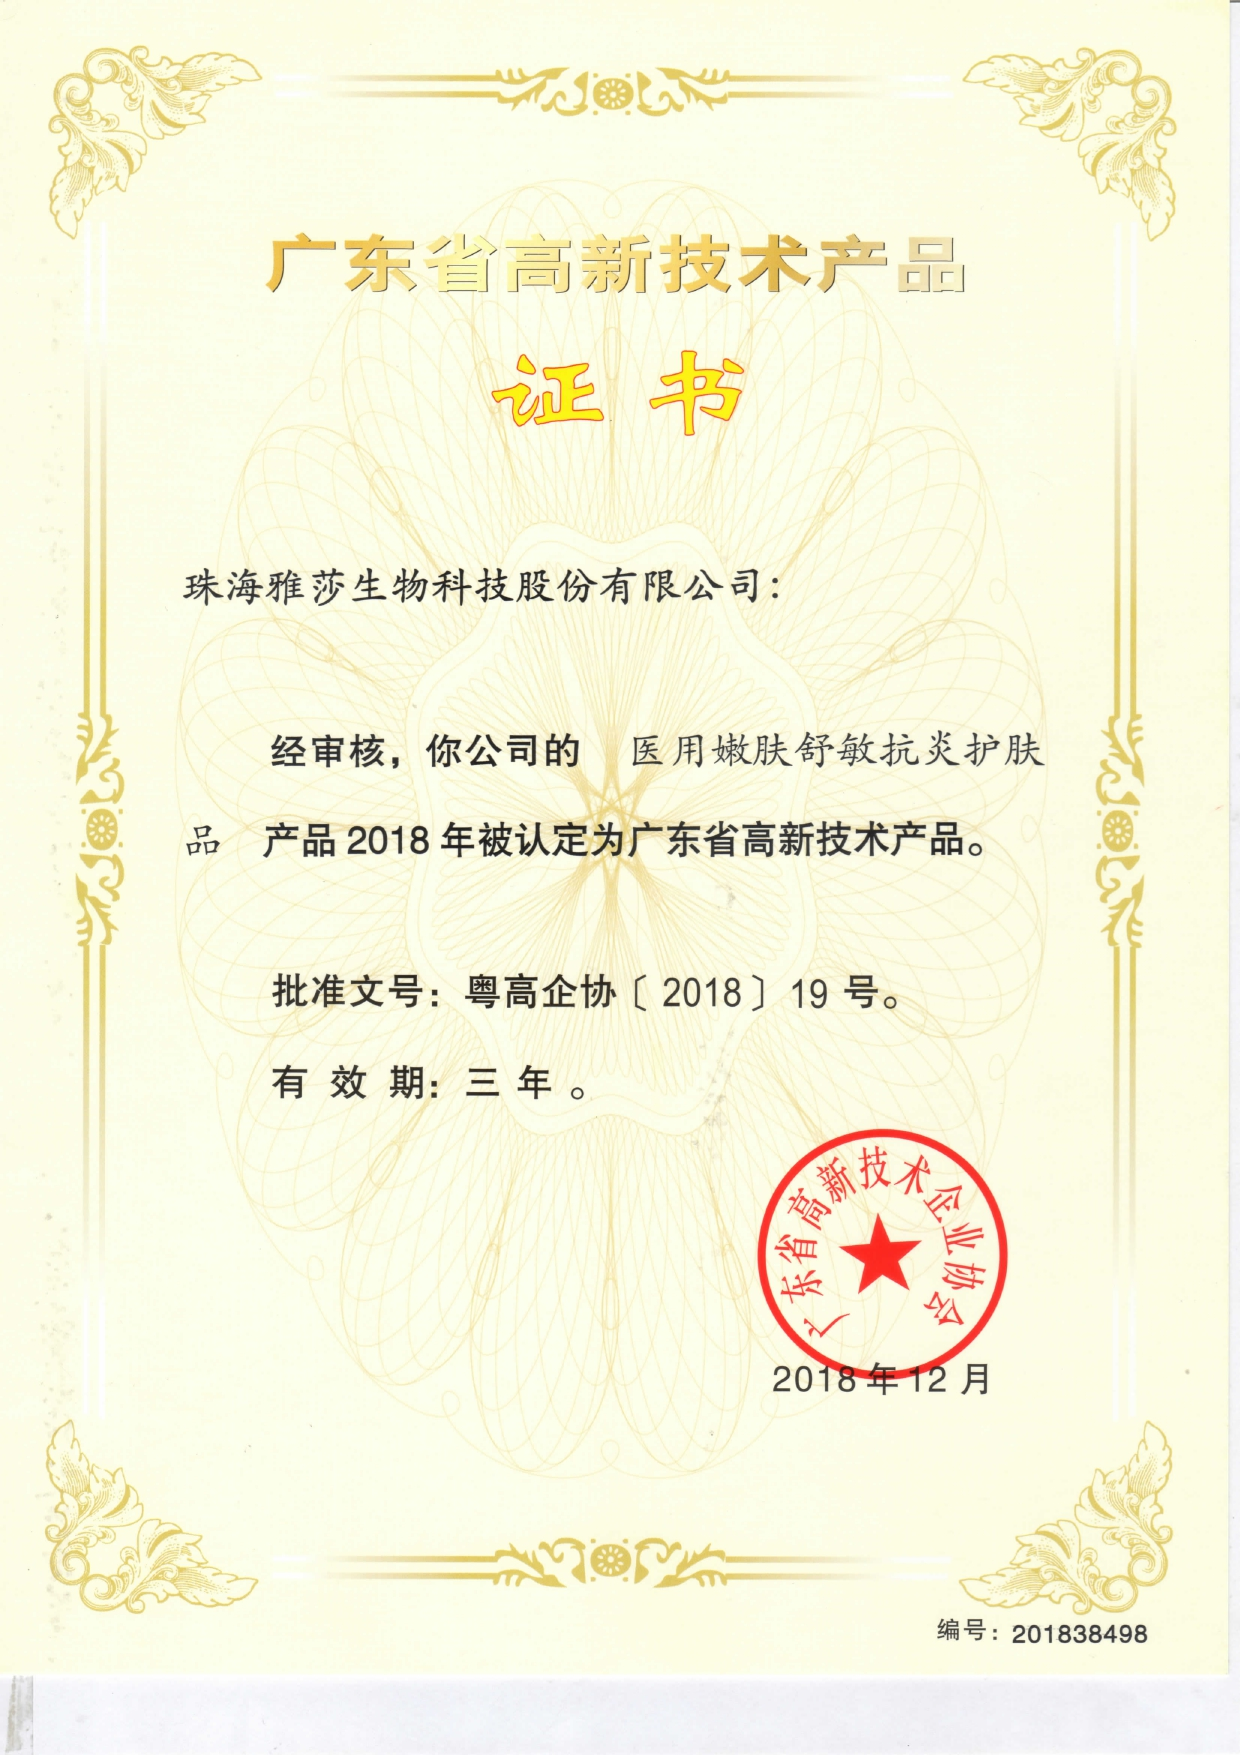 (Liquid Wound Dressing(Wound Healing Type)) Certificate of Guangdong Province New High-Tech Product